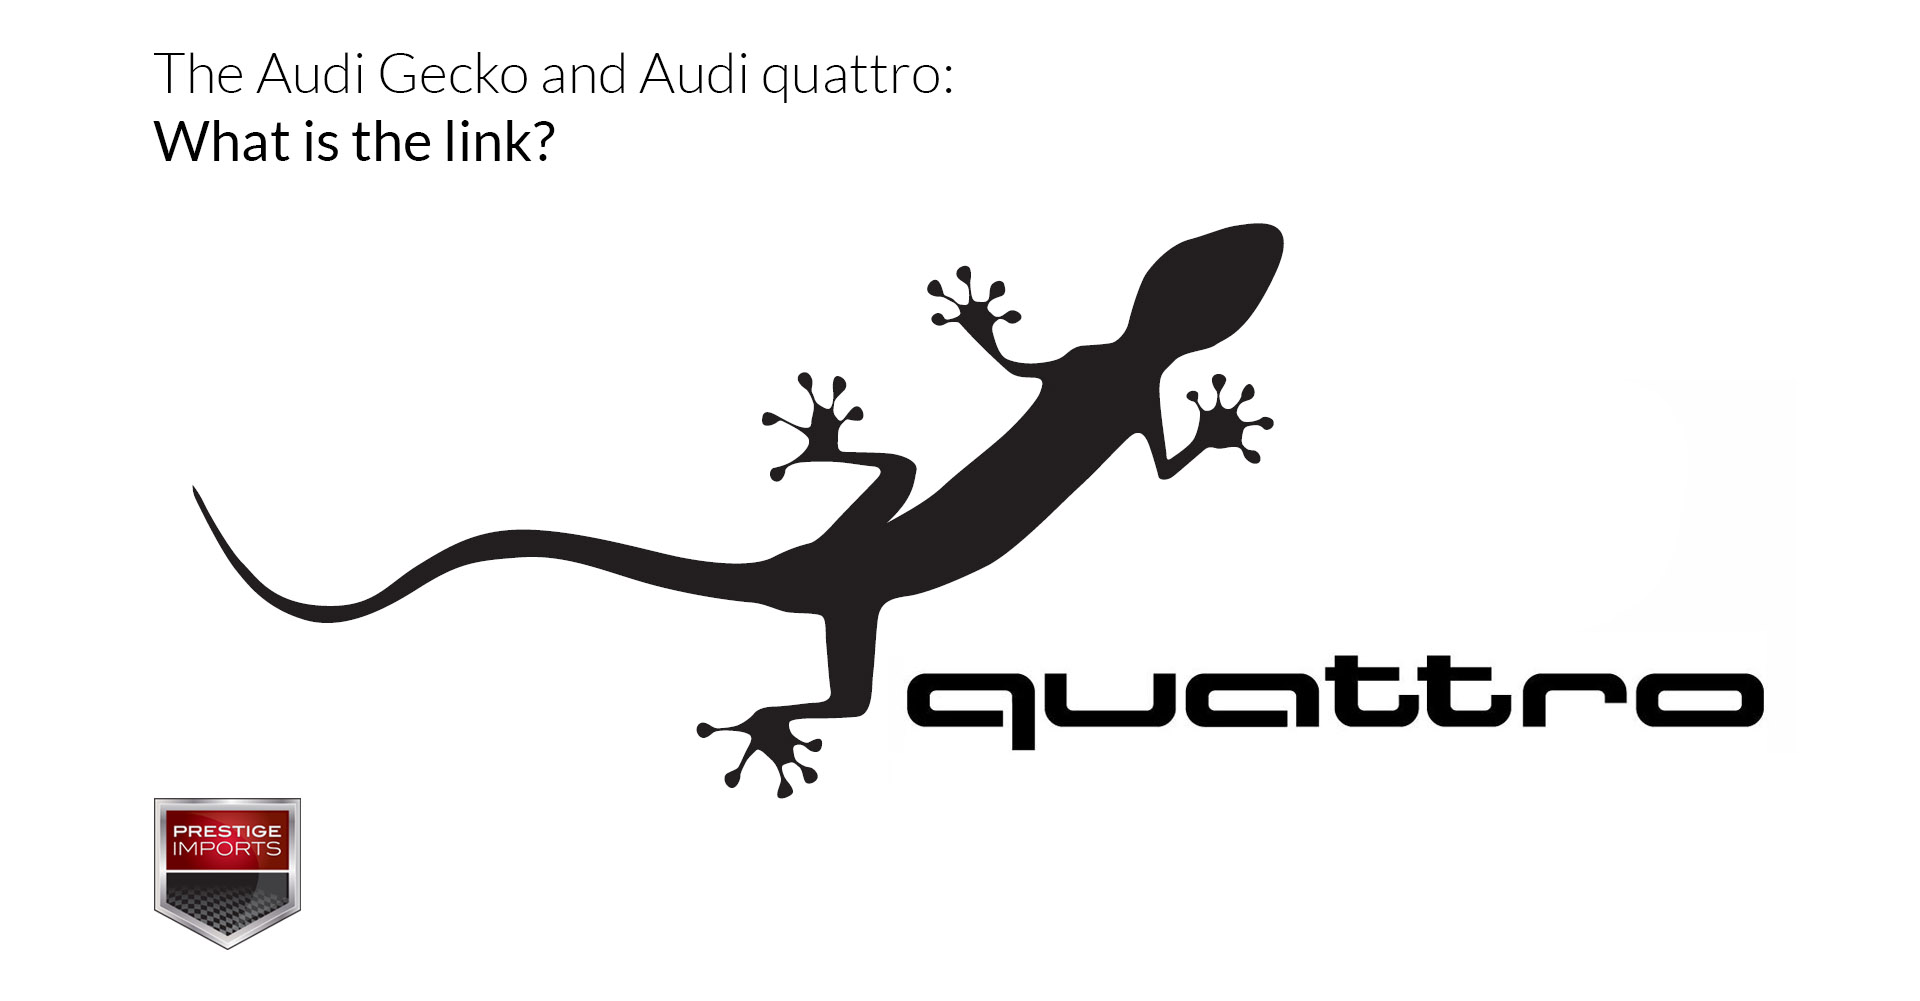 Audi gecko logo and Audi quattro: What is the link?